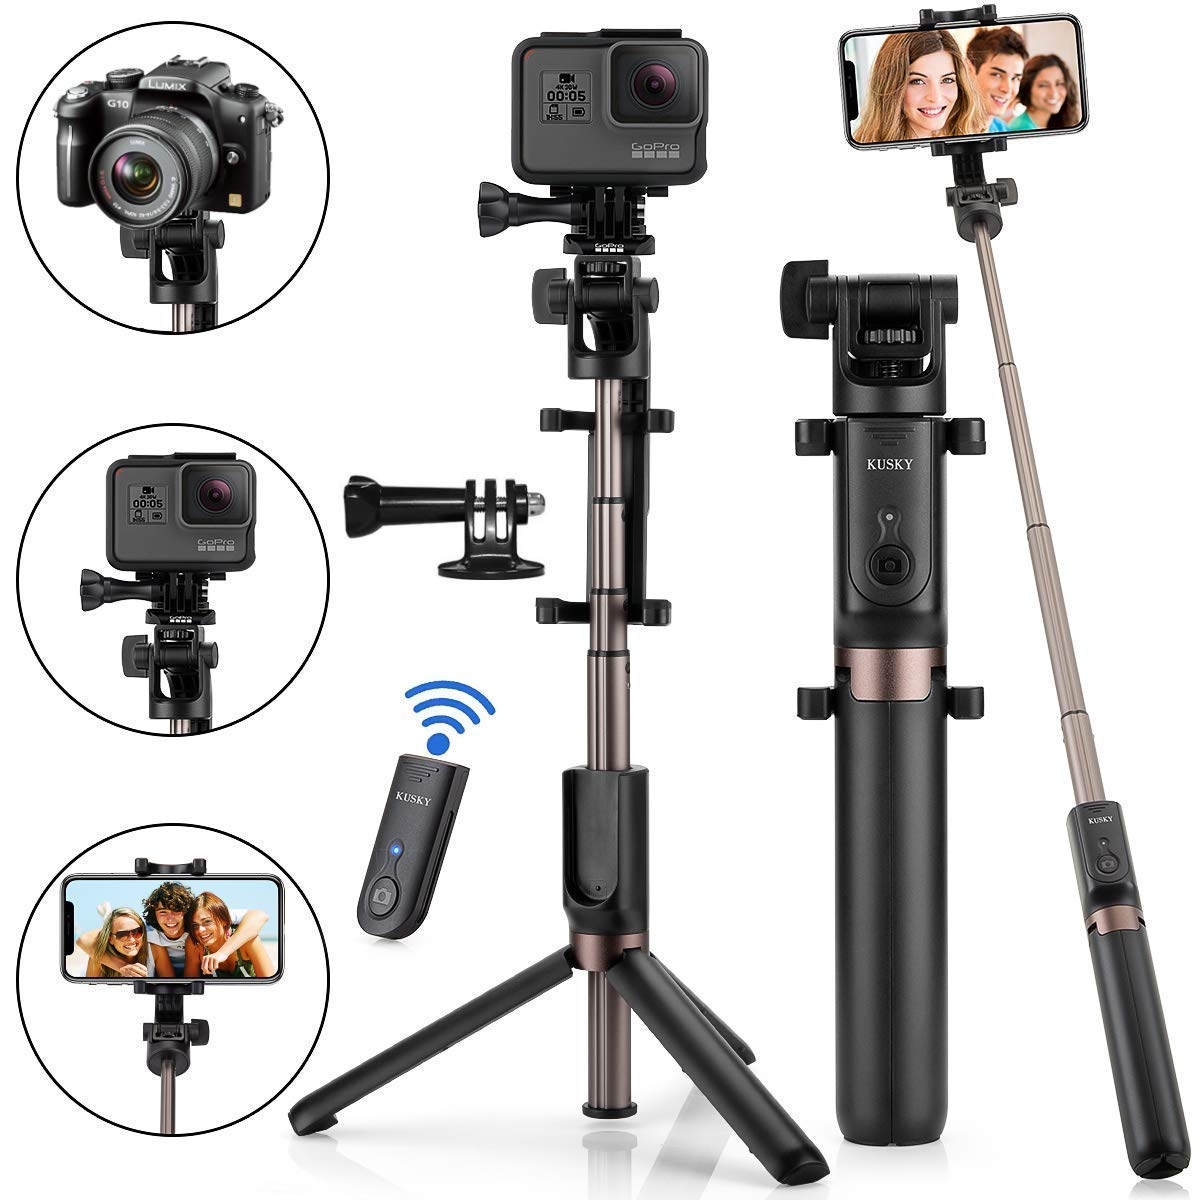 Amazon.com: Selfie Stick Bluetooth, KUSKY 2 en 1 Selfie ...